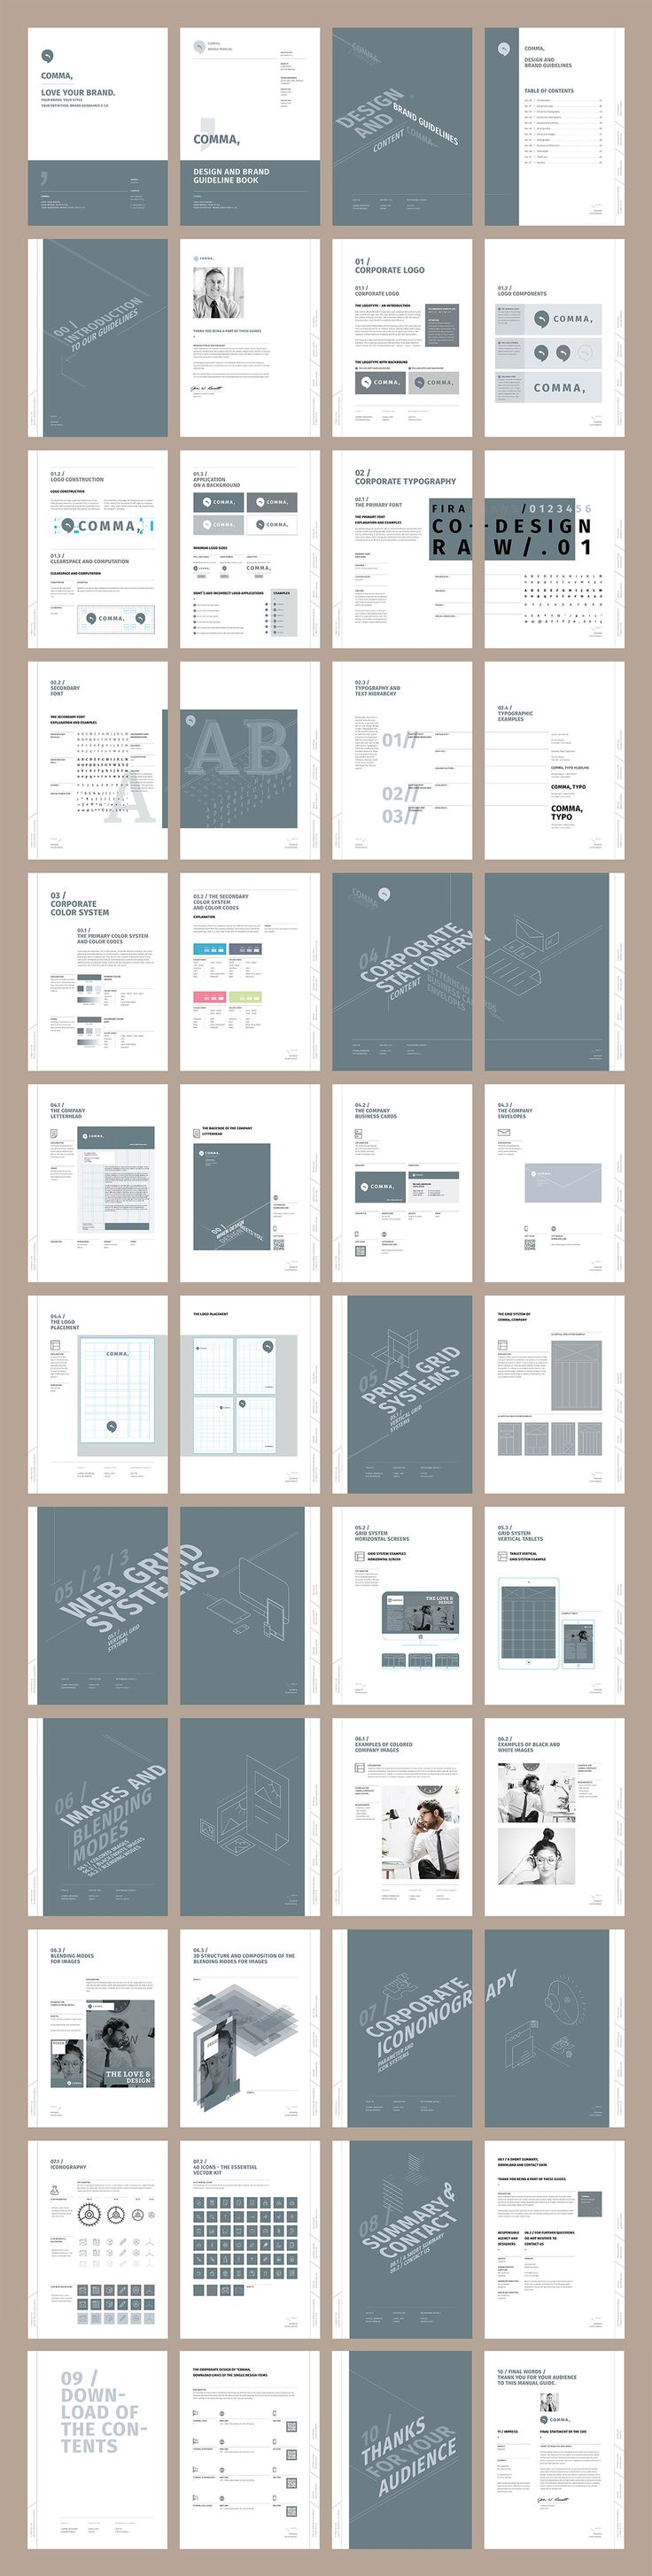 Brand Manual and Identity Template – Corporate Design Brochure – with 48 Pages and Real Text!!!Minimal and Professional Brand Manual and Identity Brochure template for creative businesses, created in Adobe InDesign in International DIN A4 and US Letter…